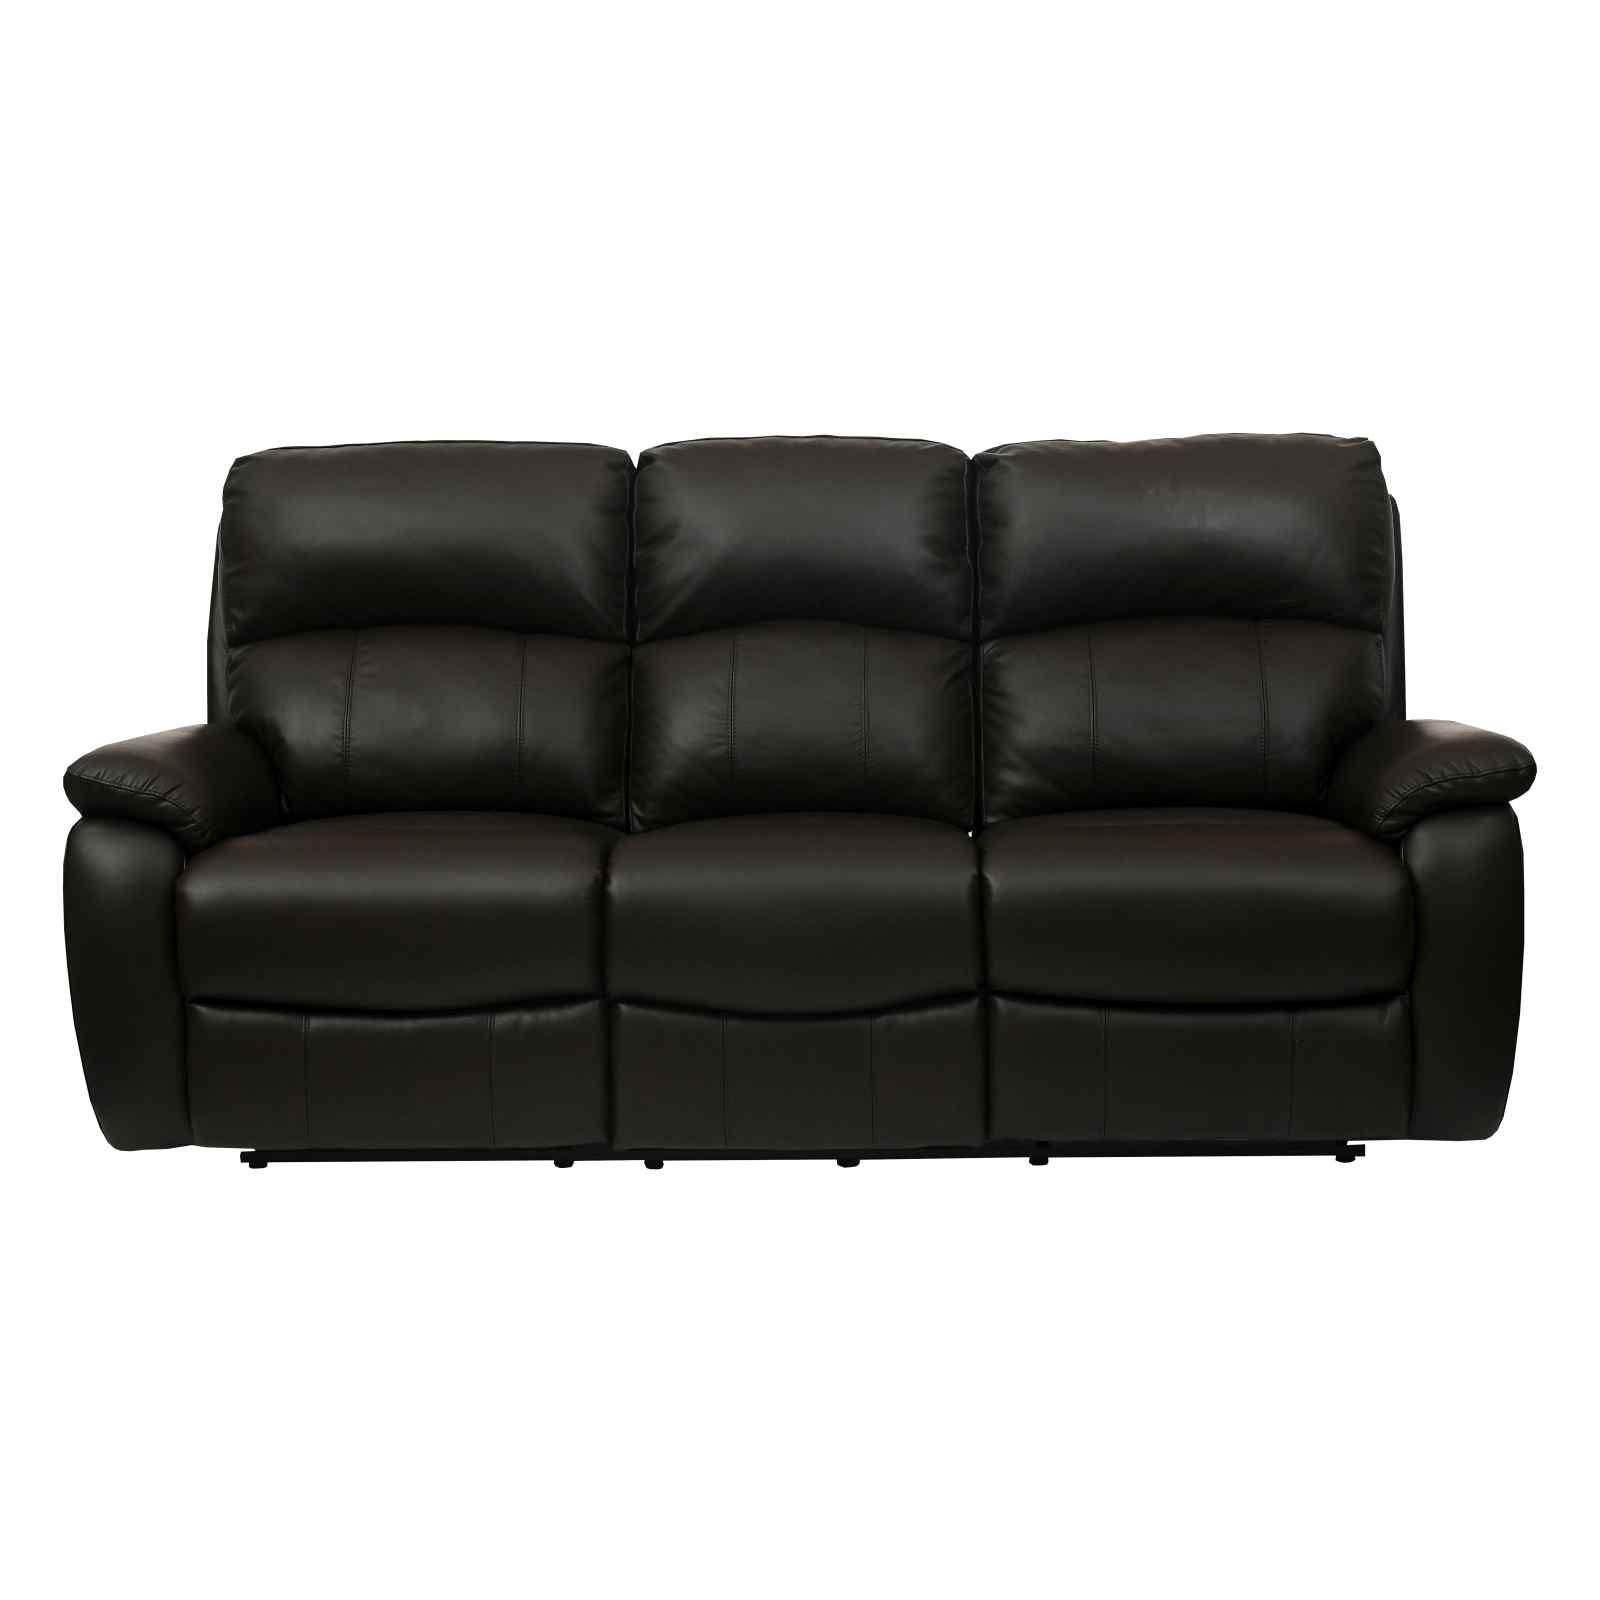 Brown Full Leather Recliner Sofa Set